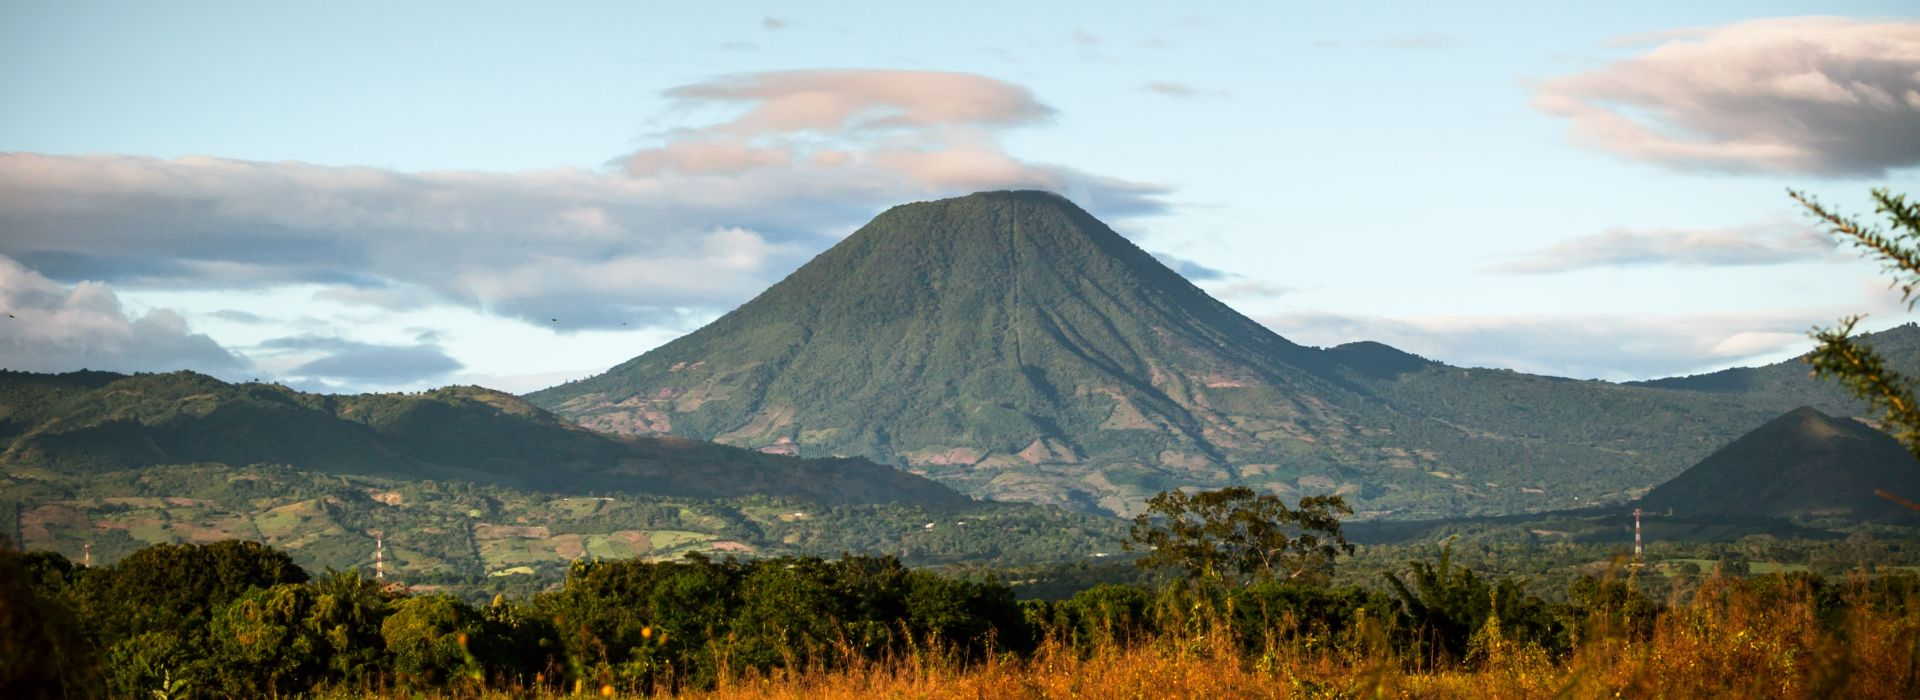 Travelling El Salvador - Tours and Holiday Packages in El Salvador